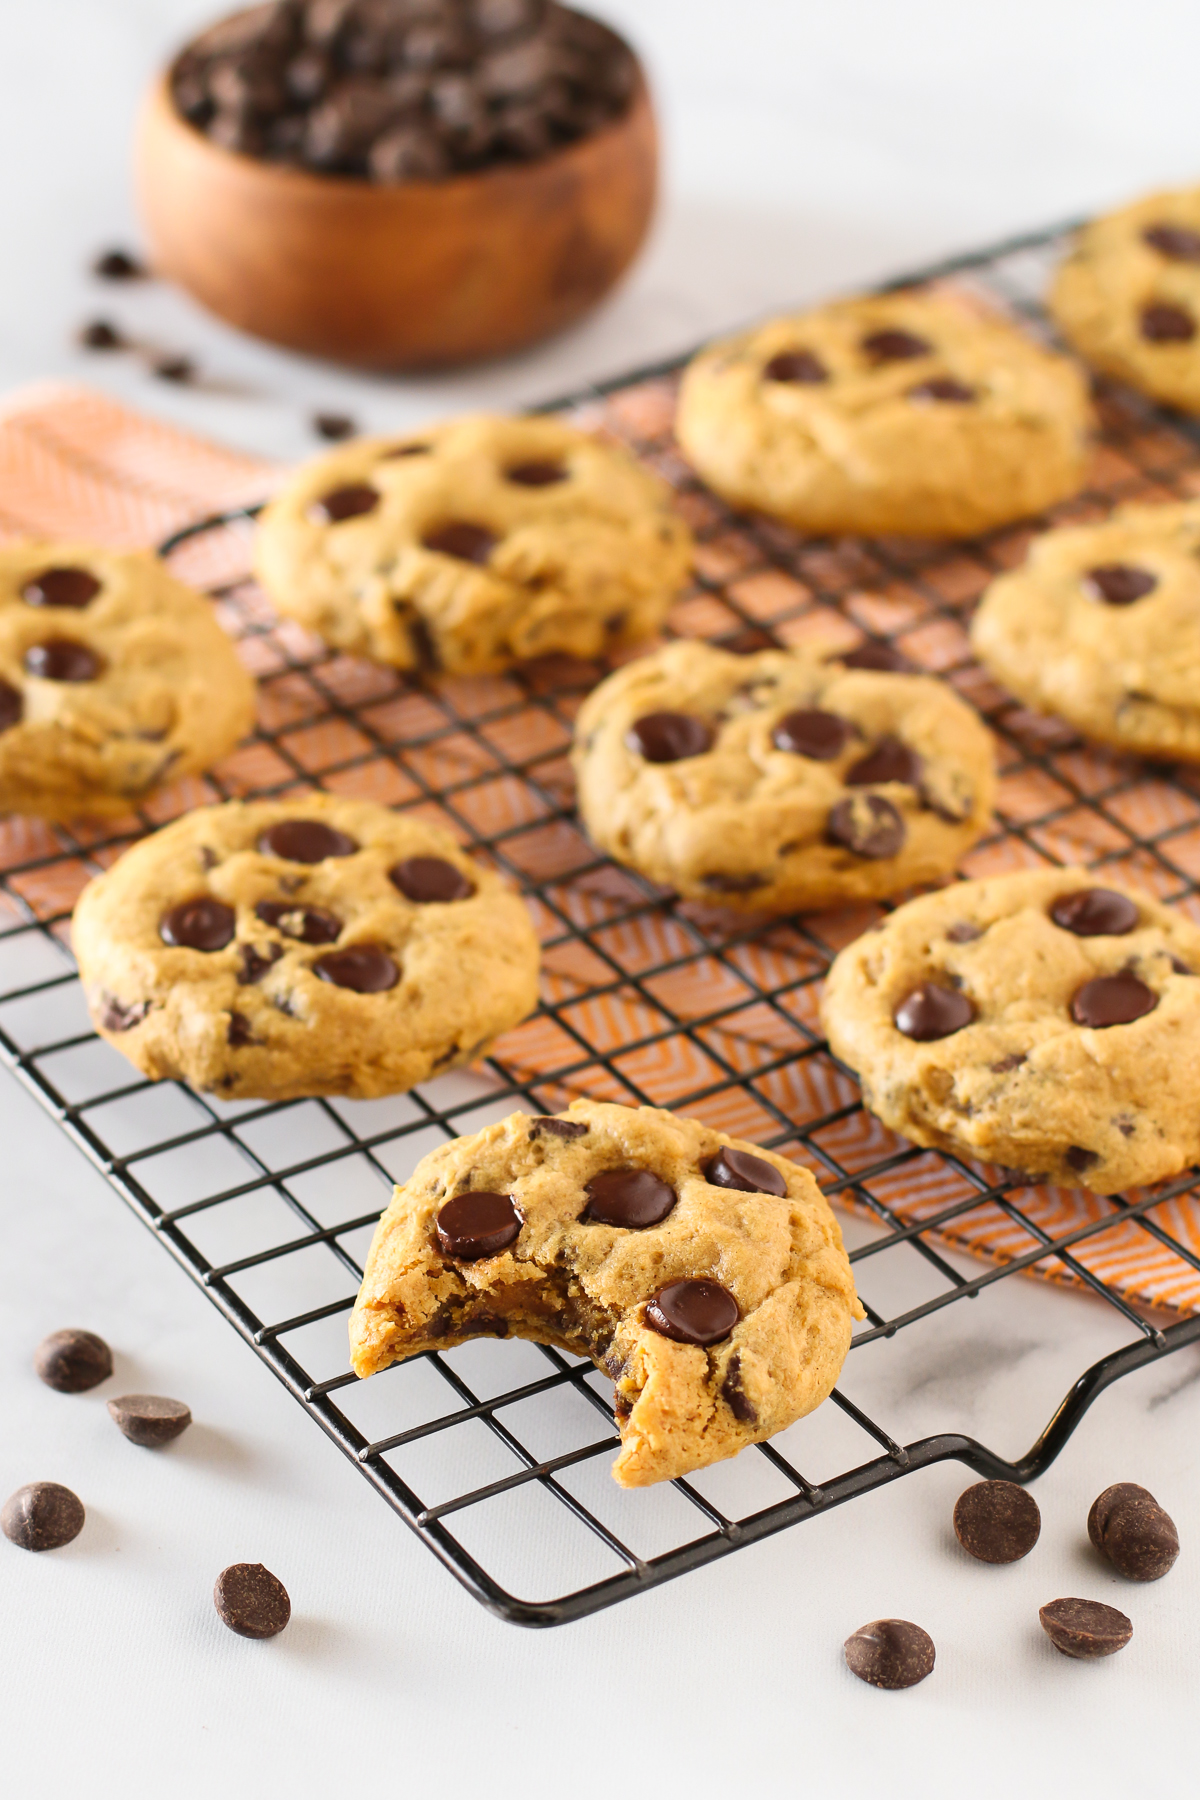 Gluten Free Vegan Pumpkin Chocolate Chip Cookies. Soft pumpkin cookies, loaded with chocolate chips. These allergen free cookies are almost too good to be true!